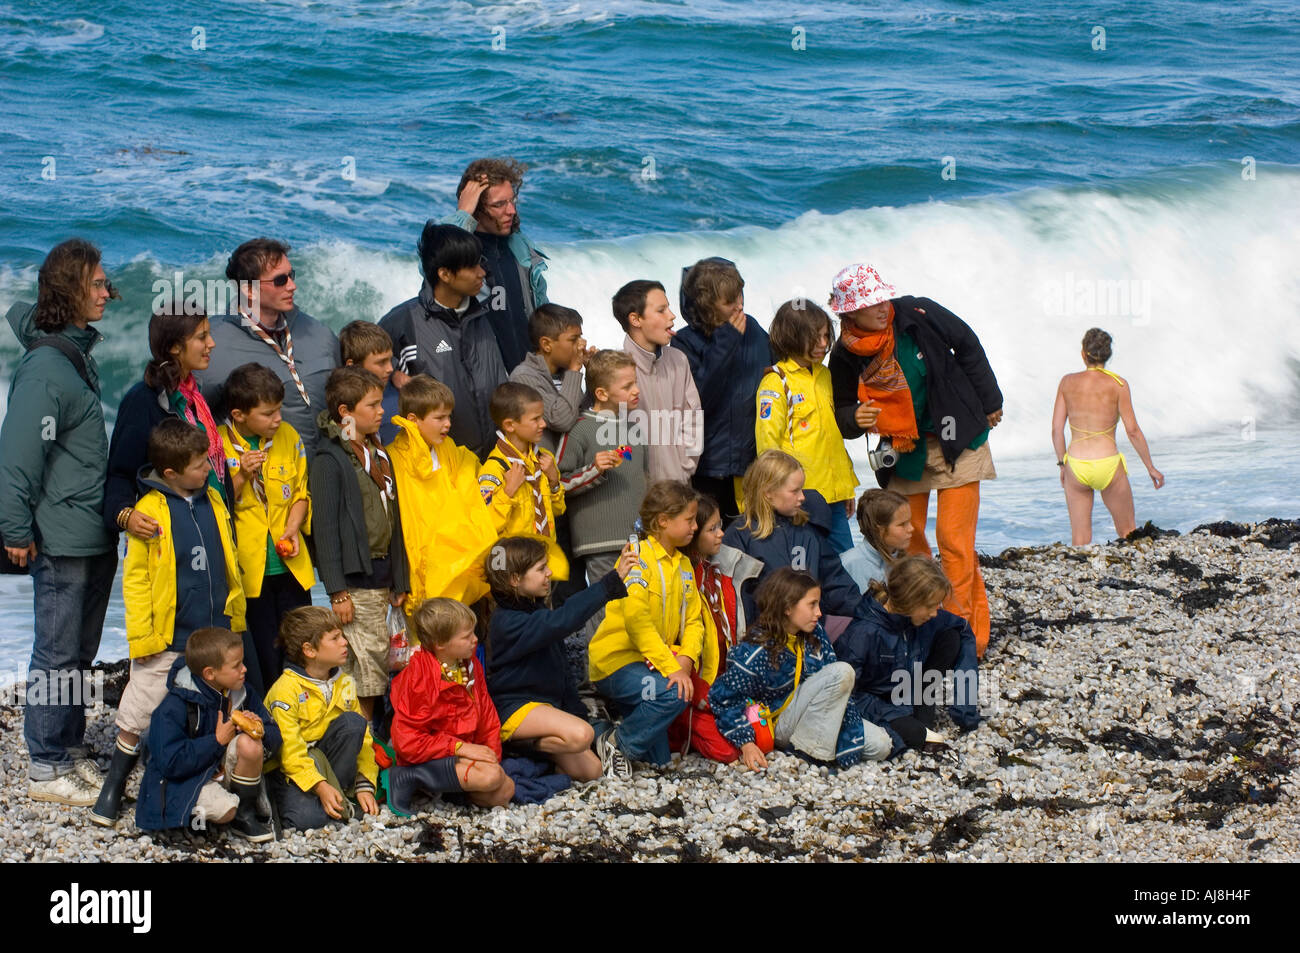 French schoolchildren pose for a photograph in warm clothing on Etretat beach while a woman bathes in a bikini - Stock Image